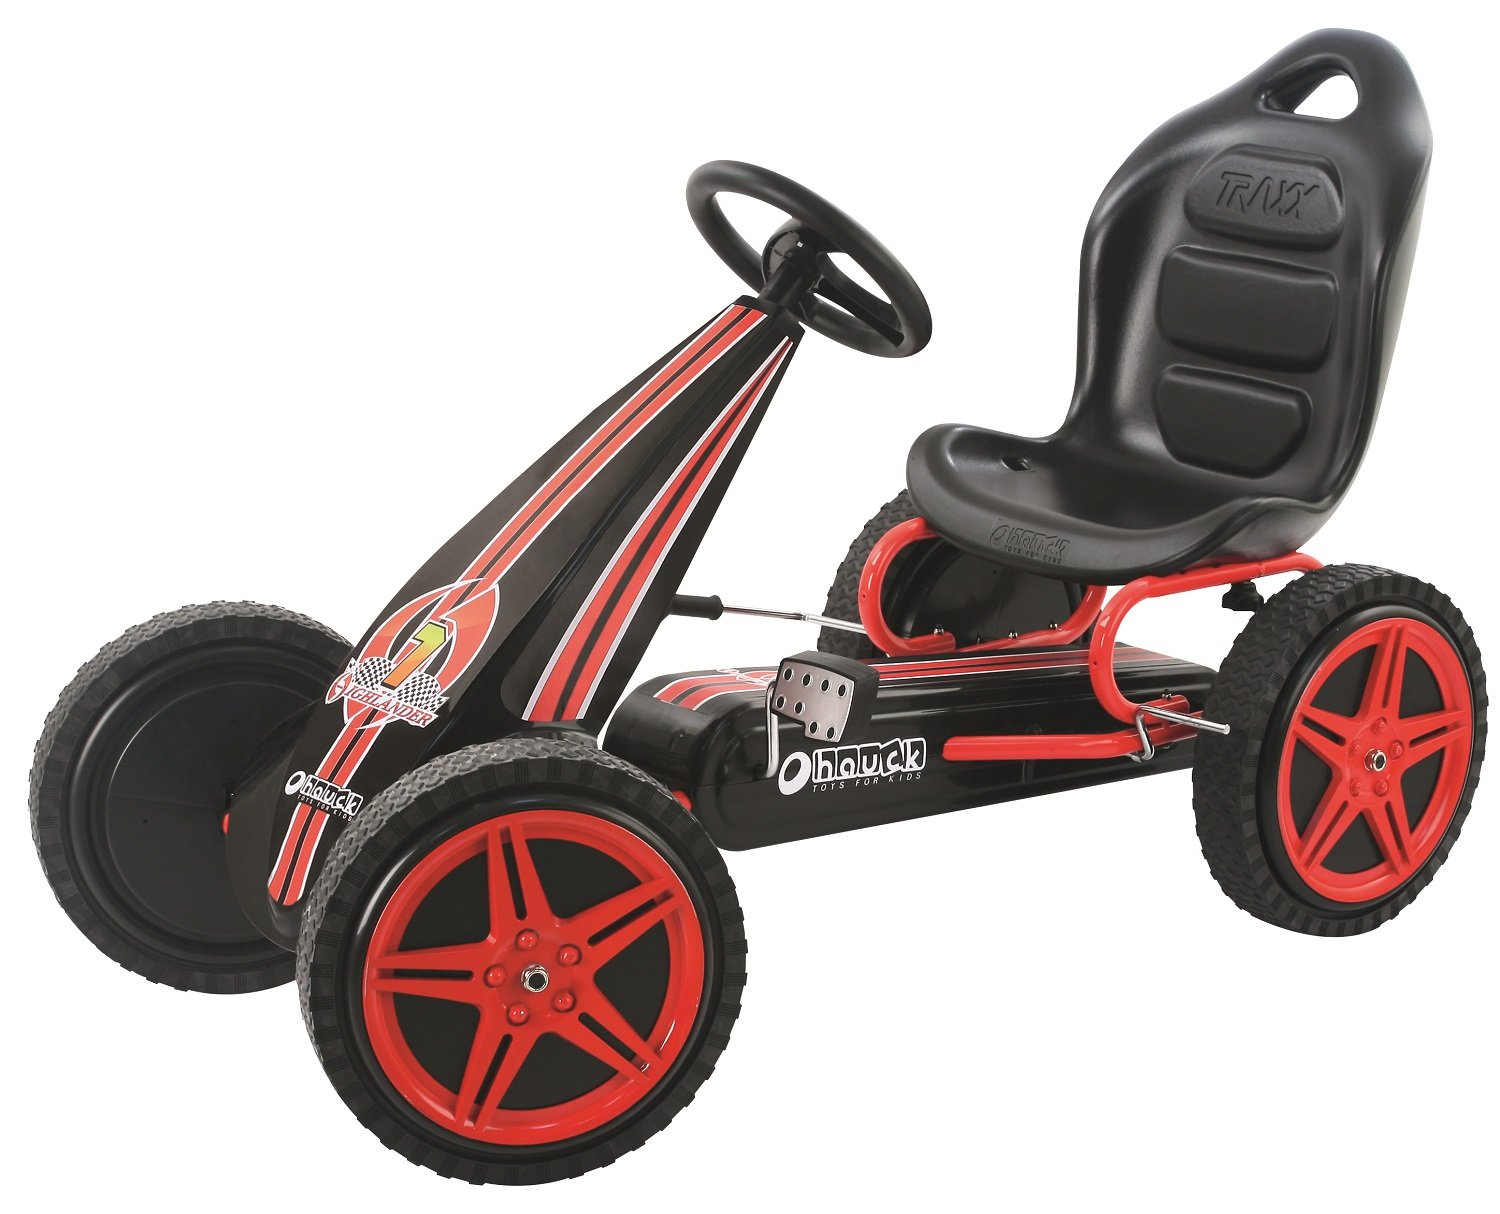 Hauck Highlander Pedal Go Kart Ride On, Red/Black by Hauck